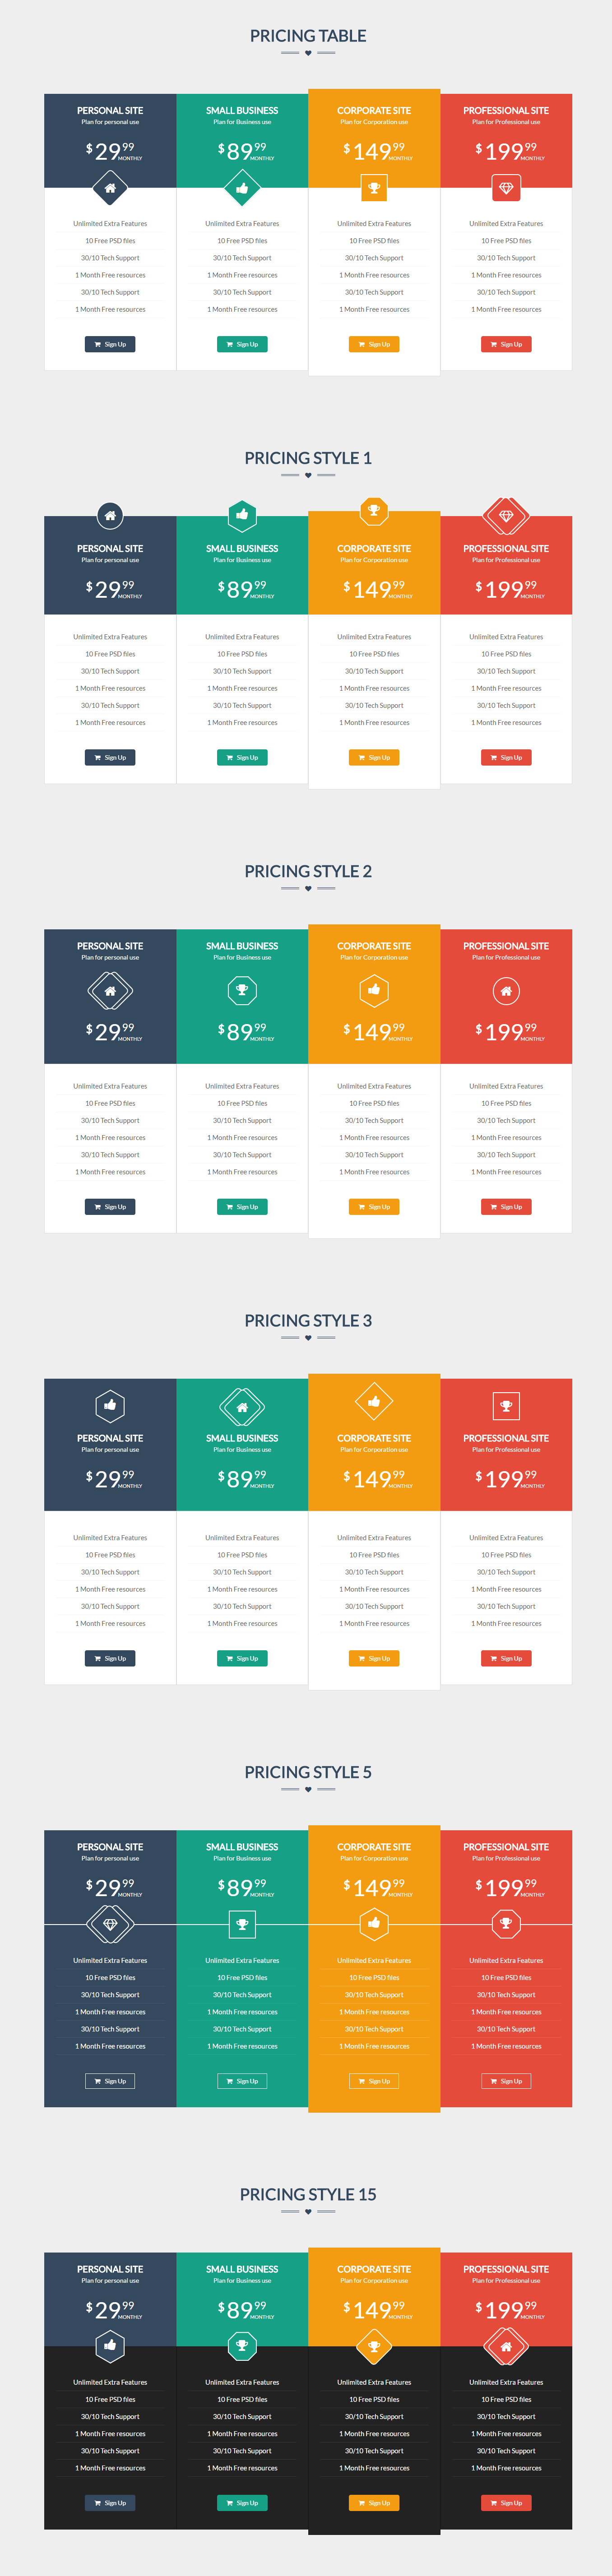 Flatprice responsive bootstrap pricing tables by for Bootstrap table responsive example